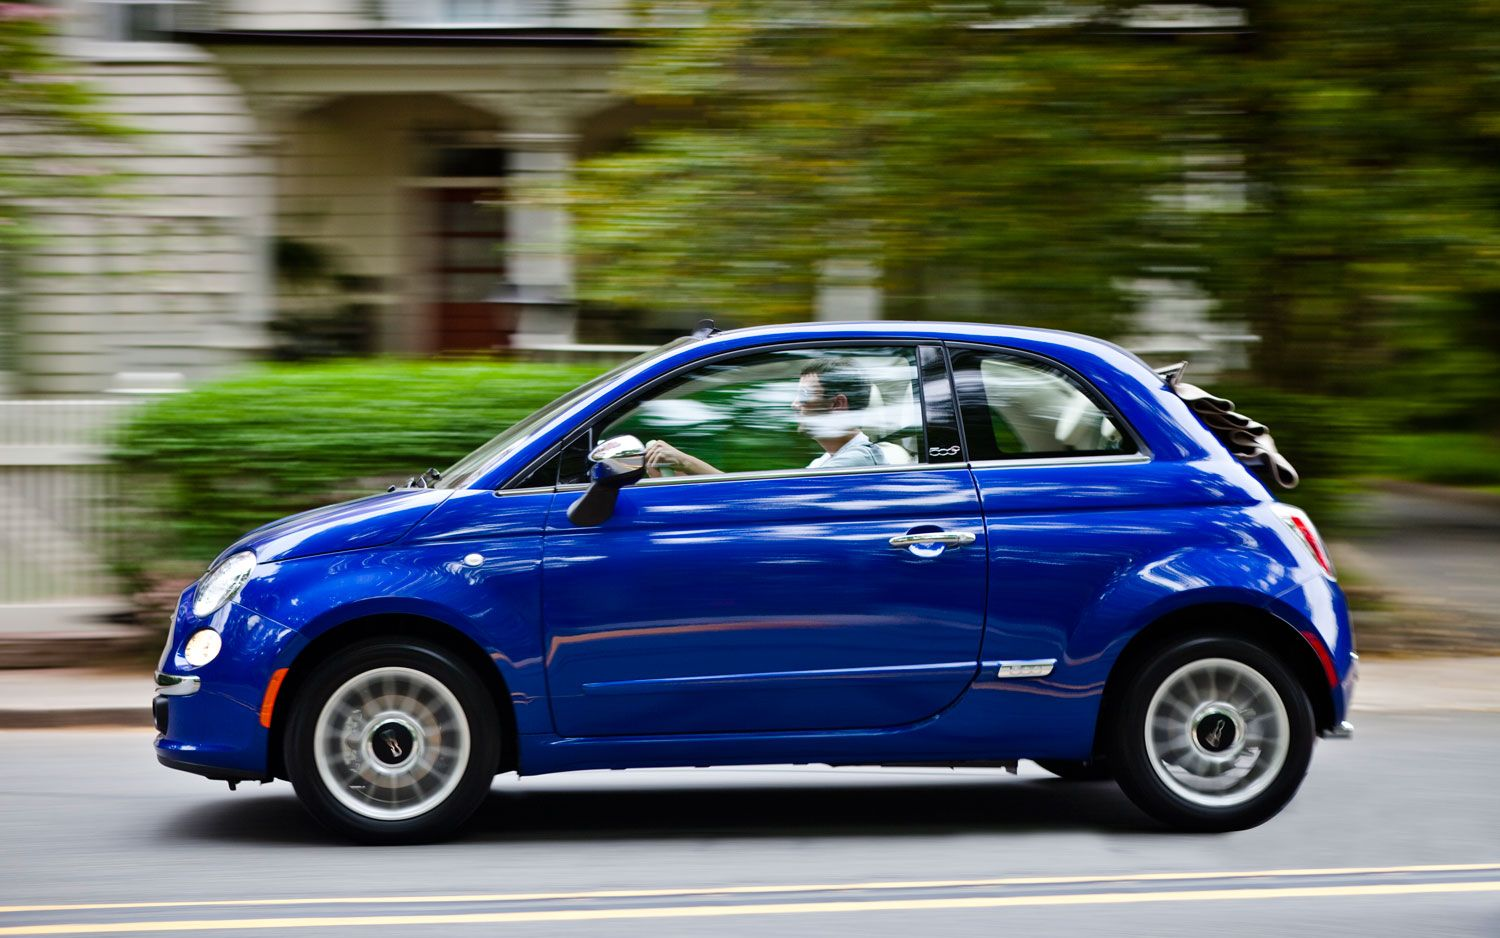 Fiat 5001 Blue Wallpaper Cool HD